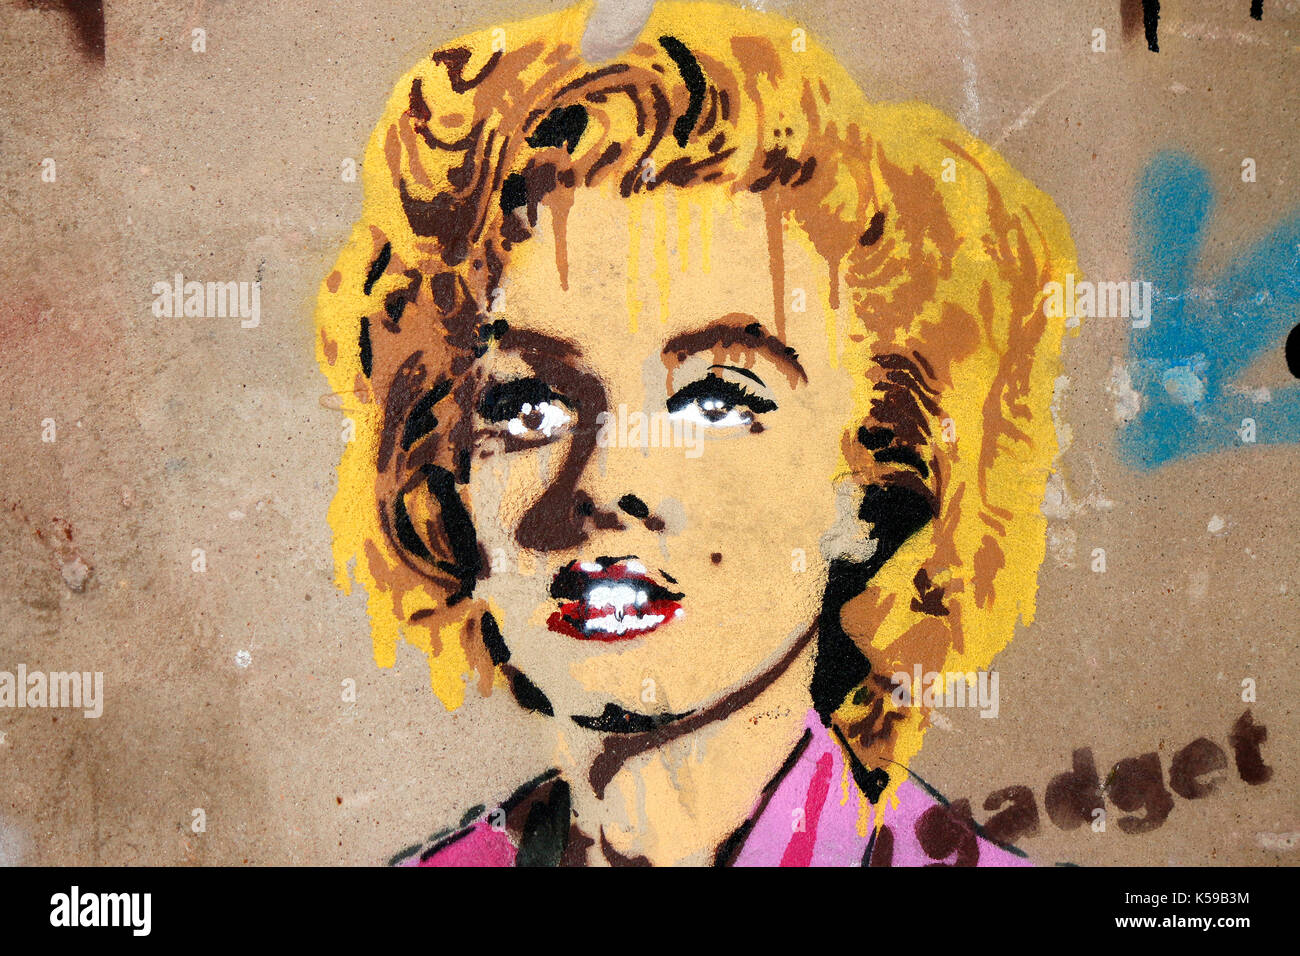 Marilyn Monroe Street Art Stock Photos & Marilyn Monroe Street Art ...